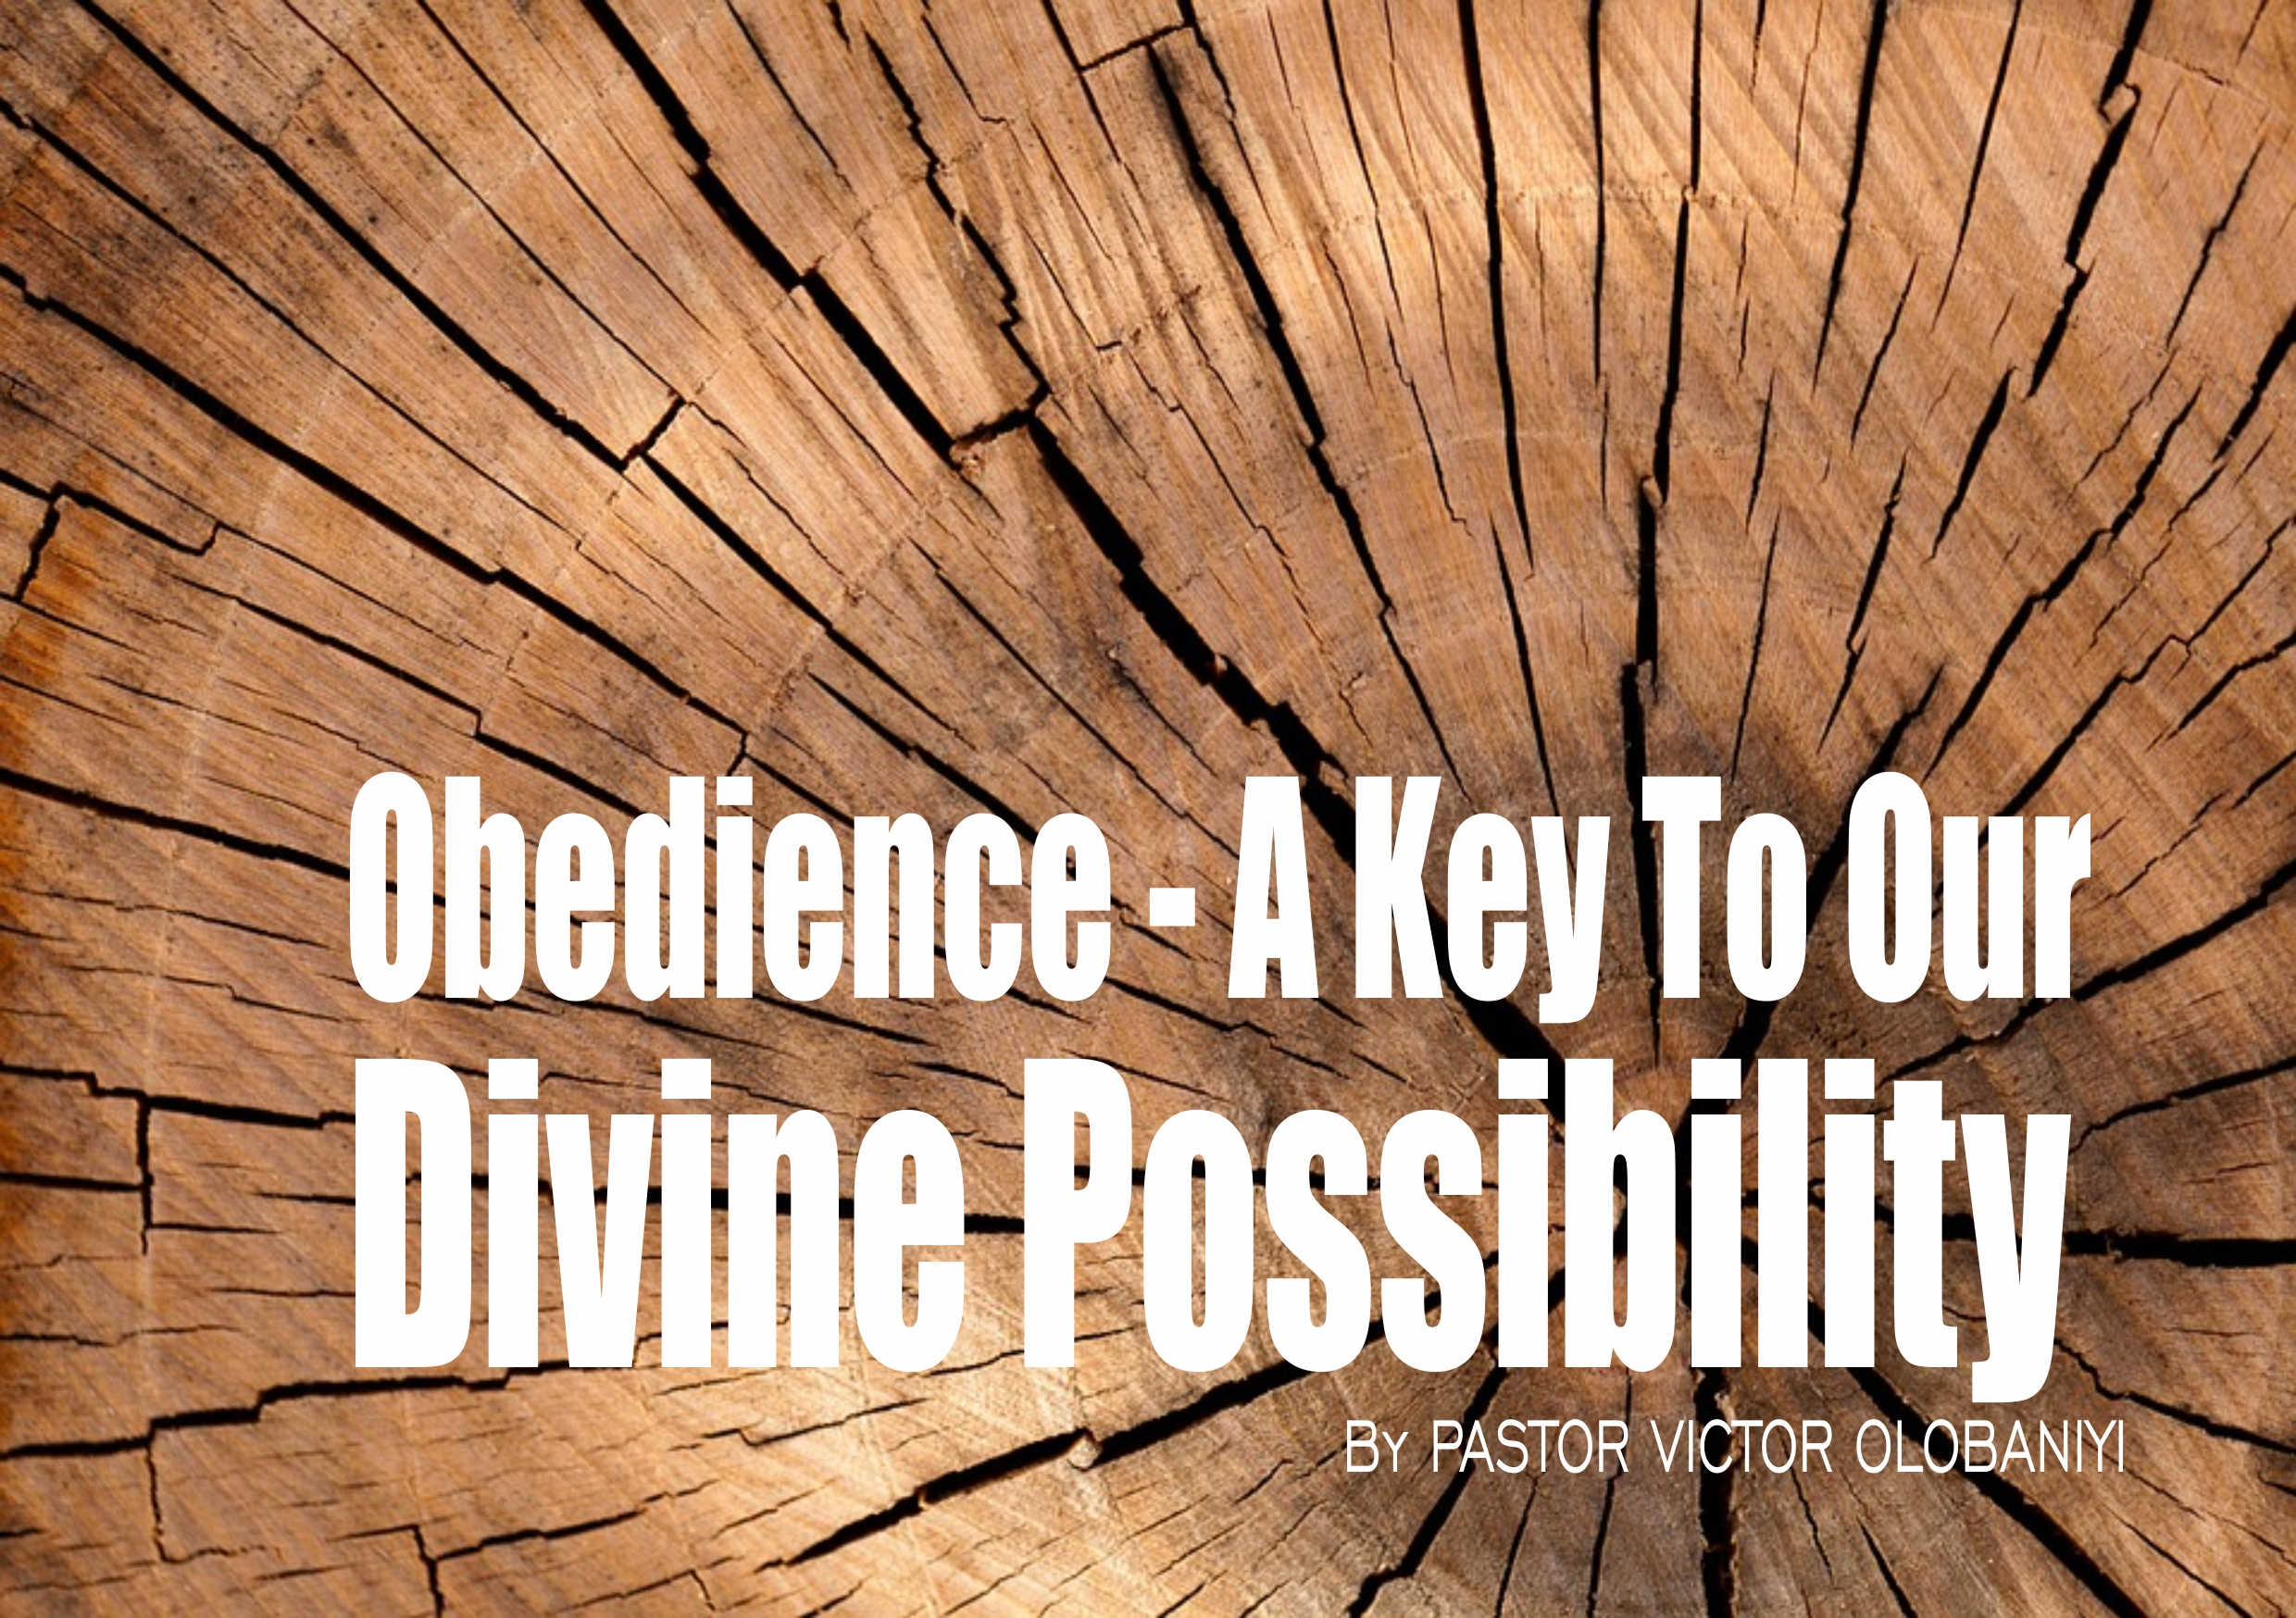 Obedience – A Key To Our Divine Possibility, by Pastor Victor Olobaniyi